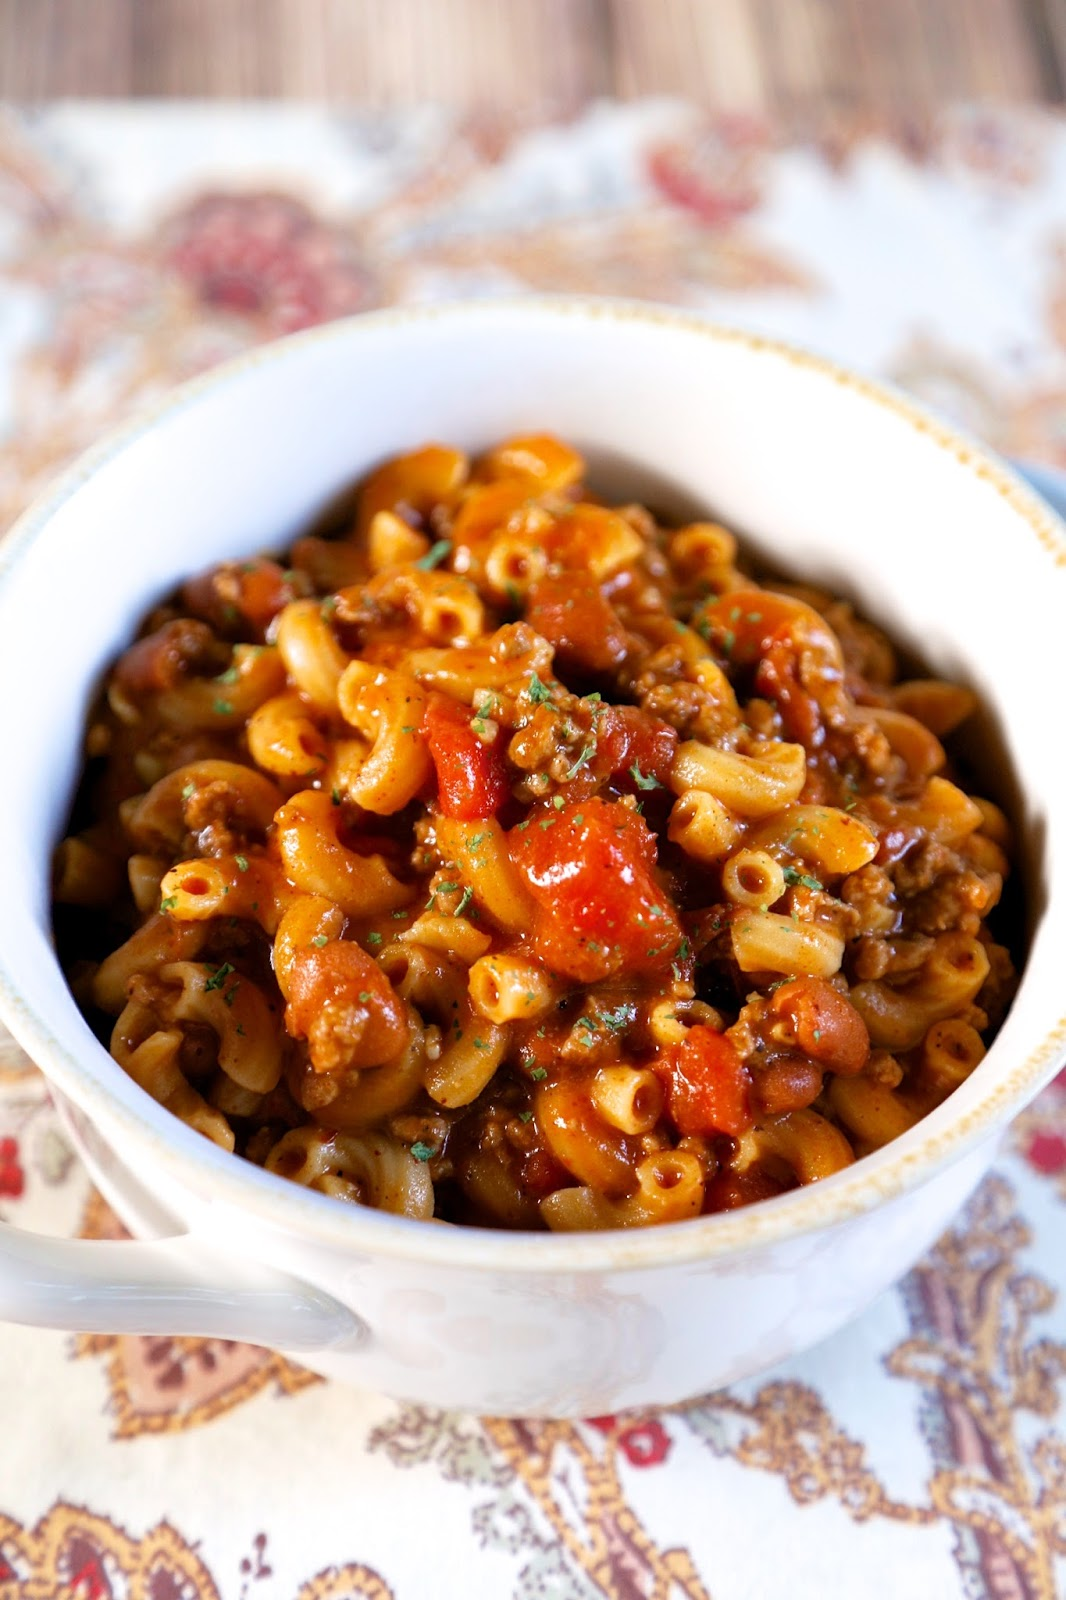 One Pot Chili Mac {No Boil} - chili and pasta simmered in the same pot! No need to precook the pasta! Hamburger, garlic, onion flakes, tomato sauce, diced tomatoes, beef broth, macaroni, chili seasoning, chili powder and chili beans.Great quick and easy weeknight meal! #chili #onepotmeal